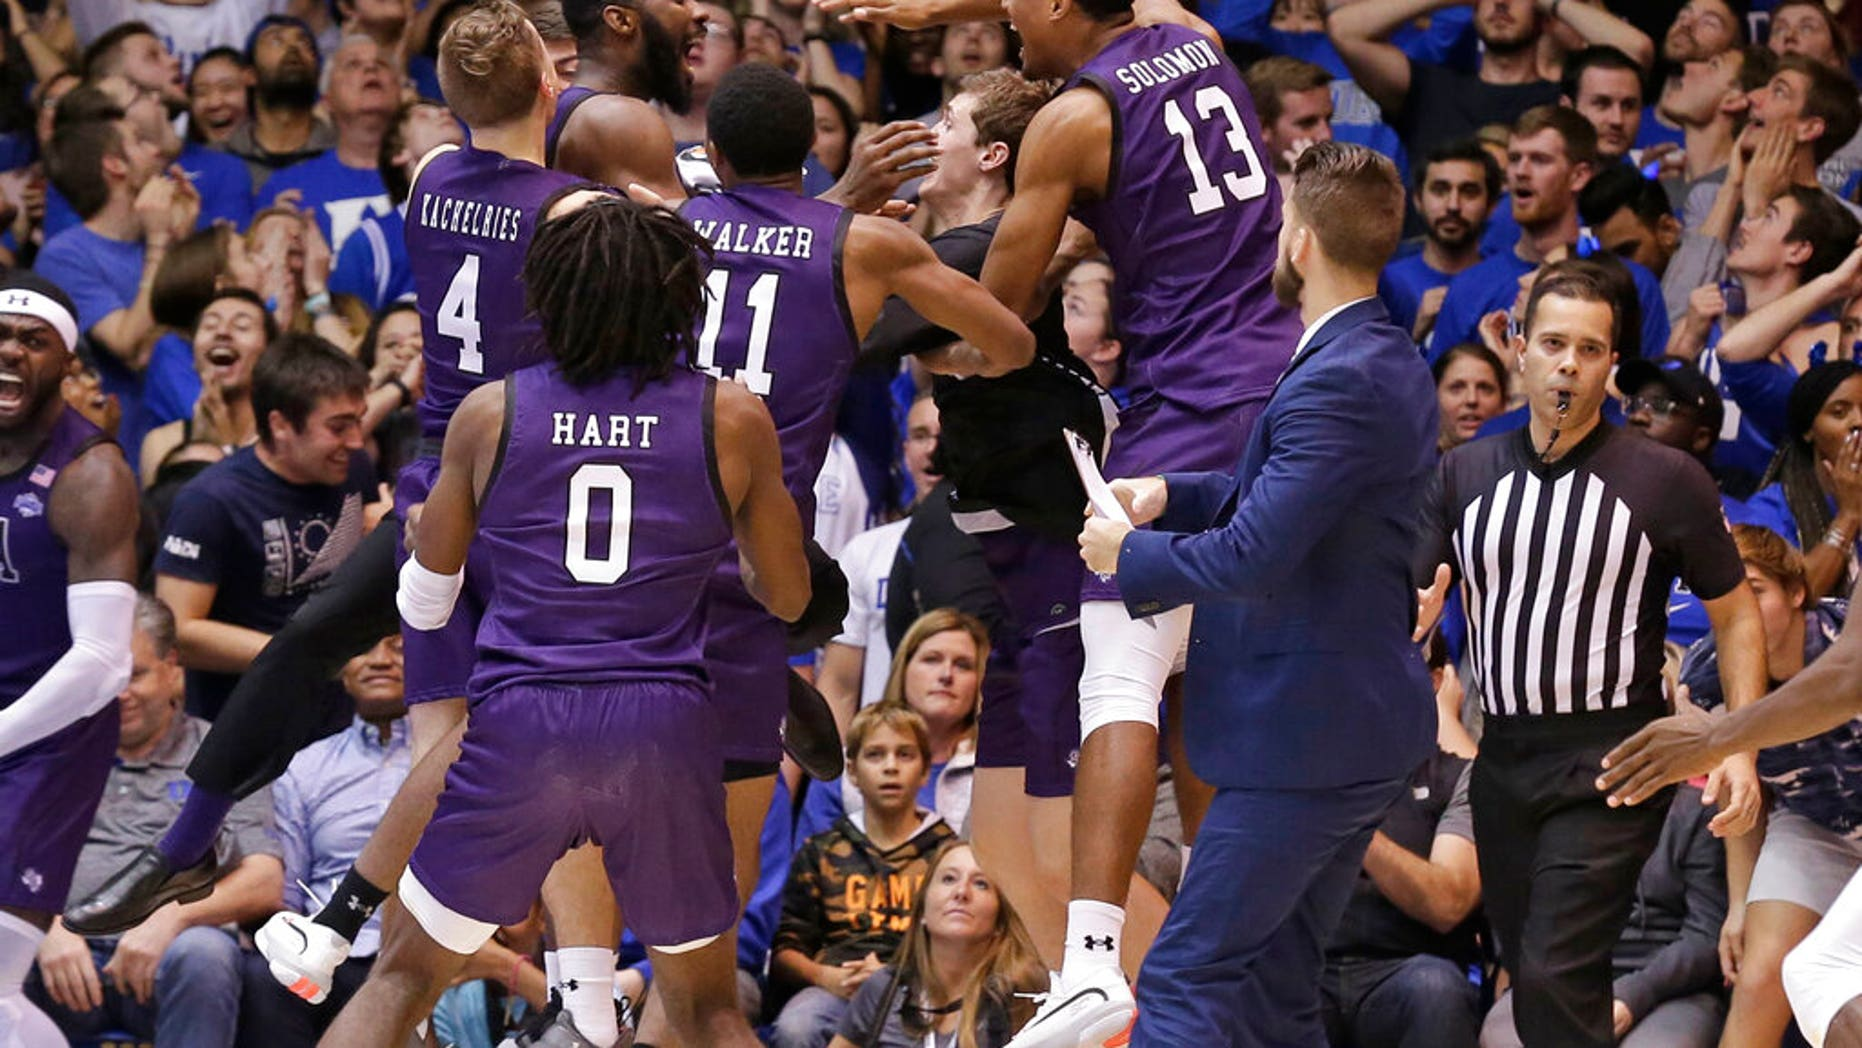 Donations spike for SFA player after squad's upset of Duke